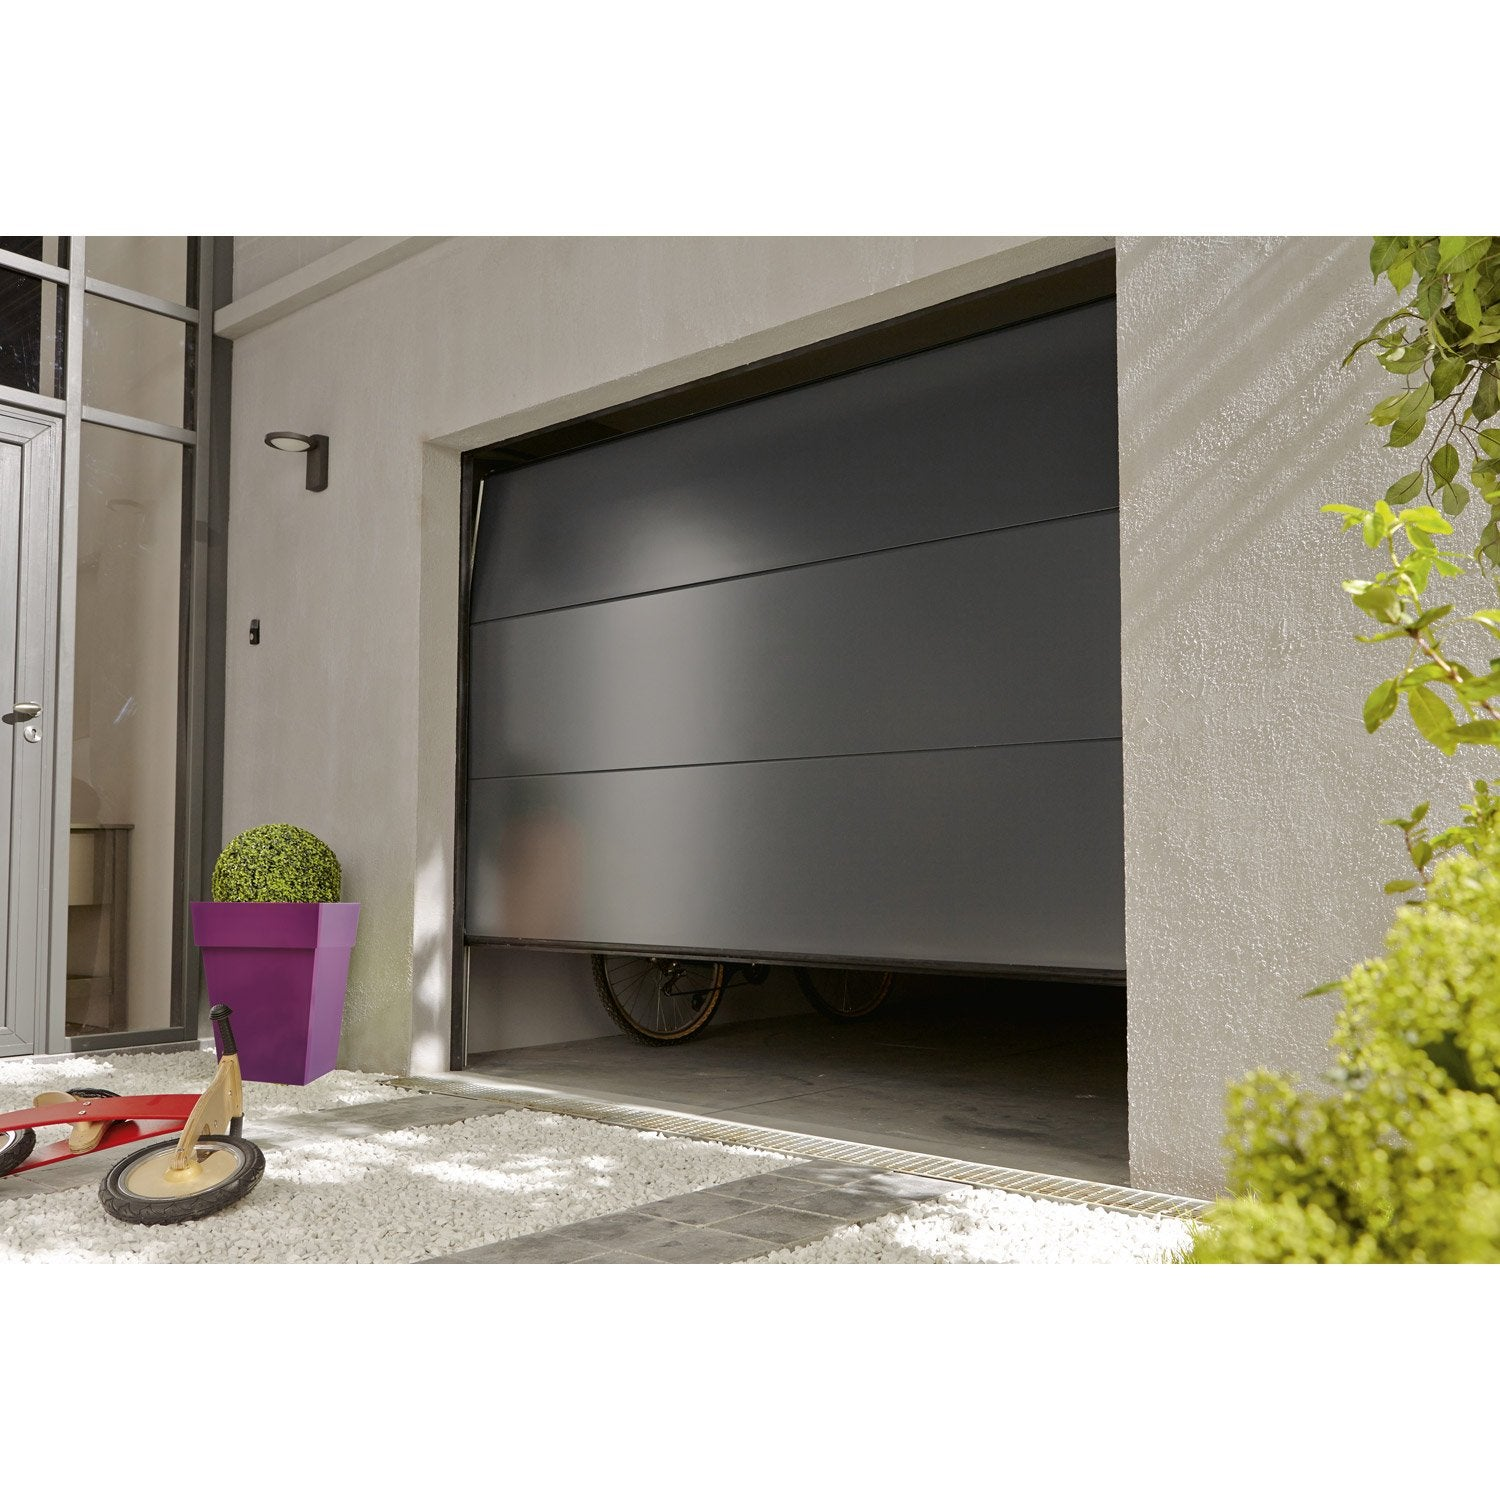 Porte de garage sectionelle palma acier gris anthracite for Porte garage sectionnelle sur mesure prix